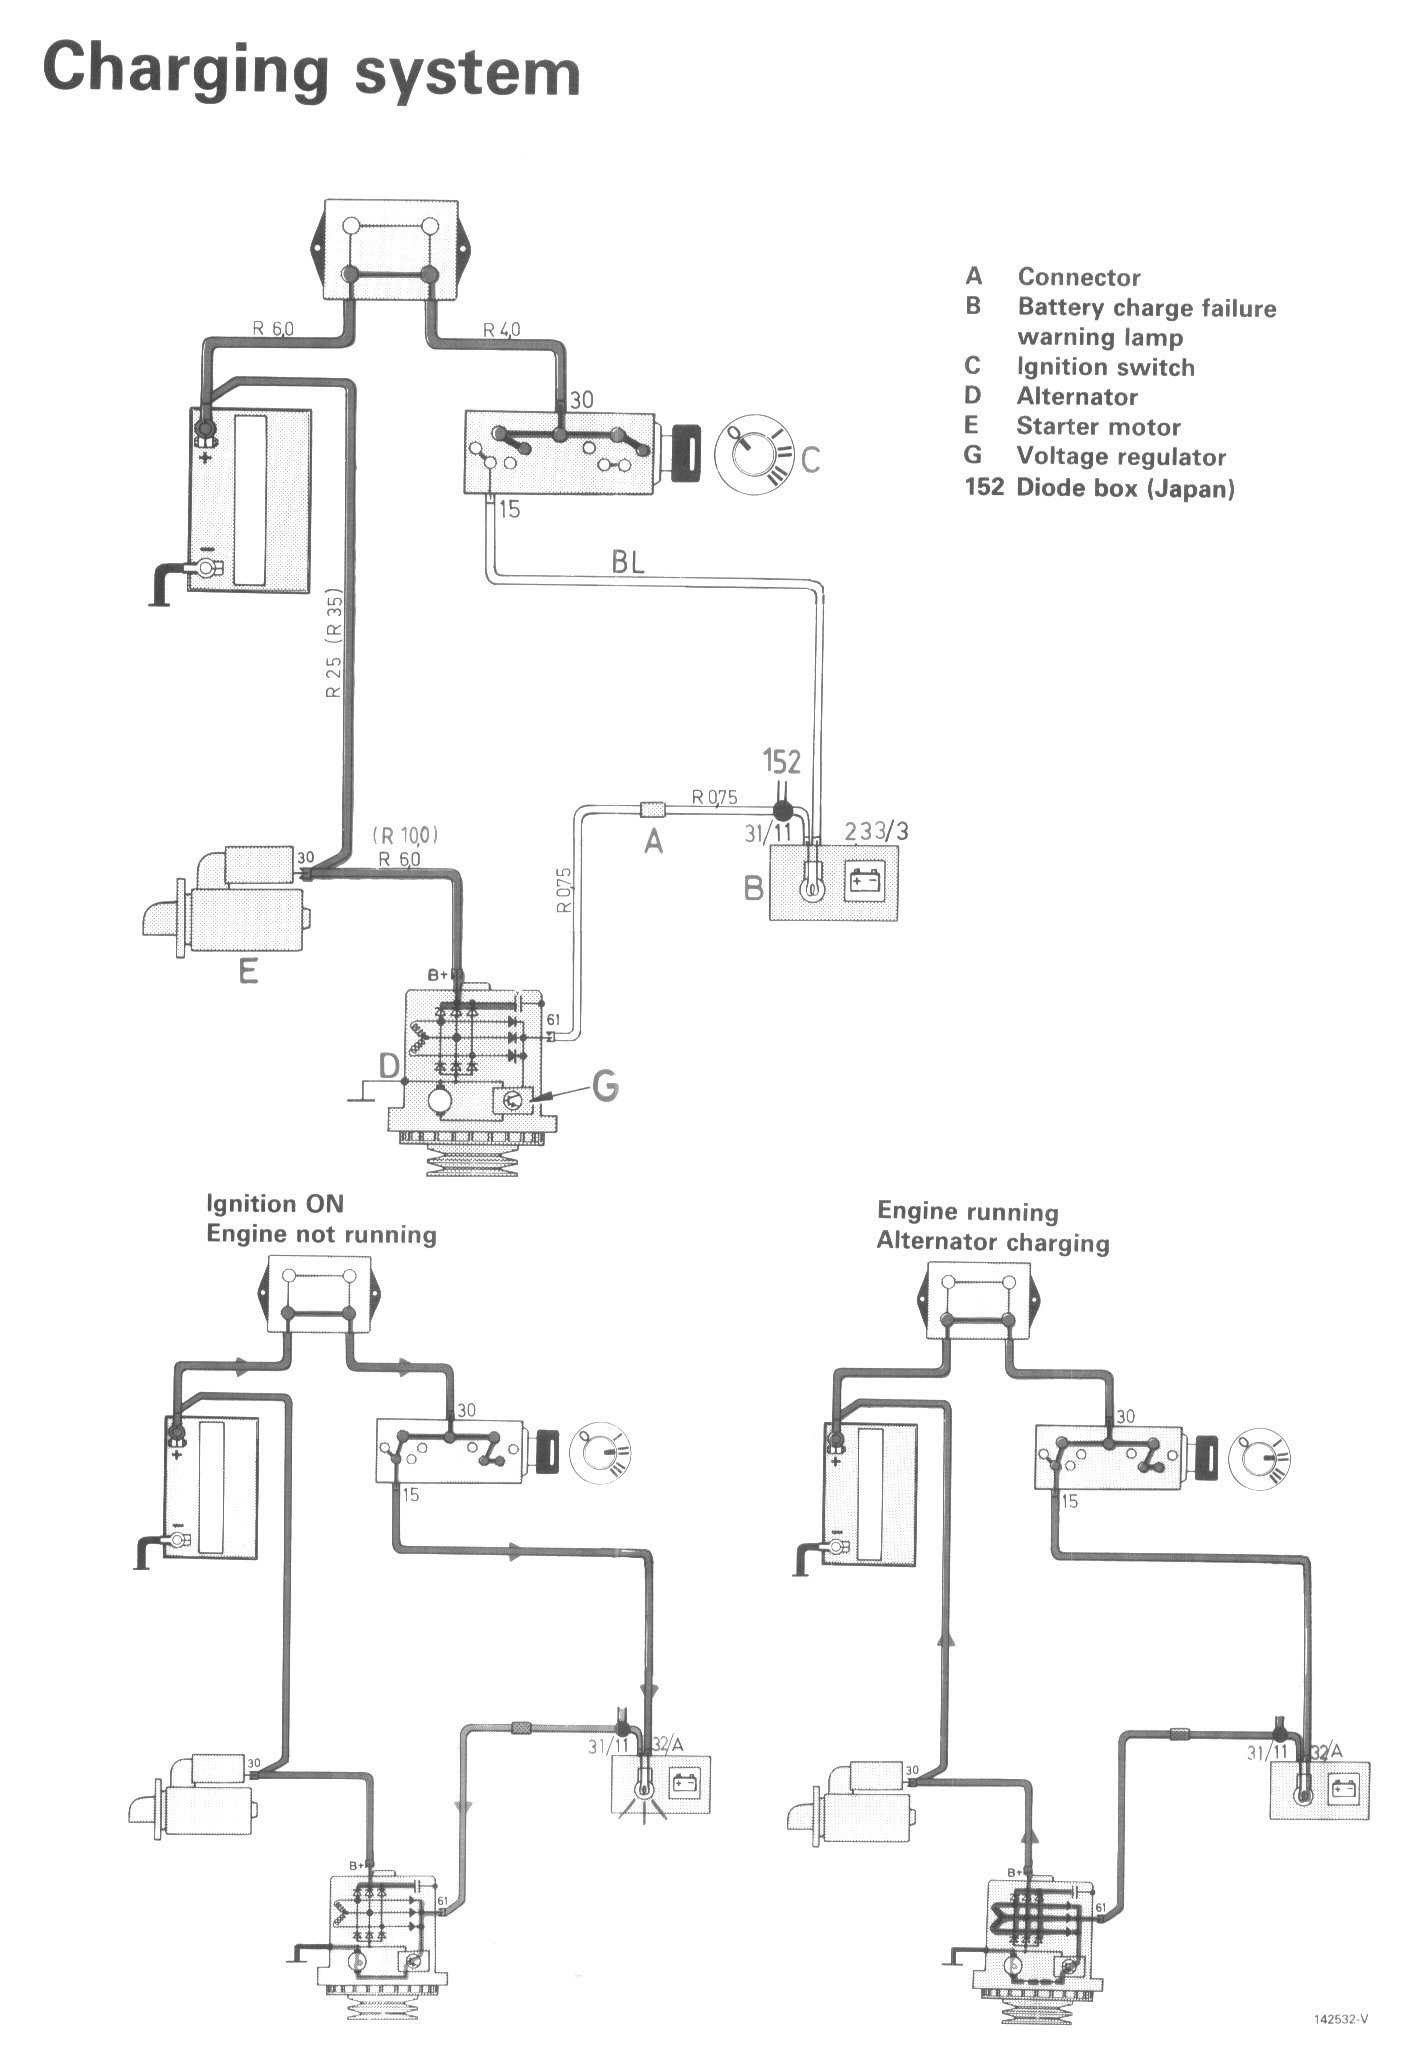 1983 Volvo 240 Wiring Diagram Volvo A40d Fuse Box Rcba Cable Tukune Jeanjaures37 Fr